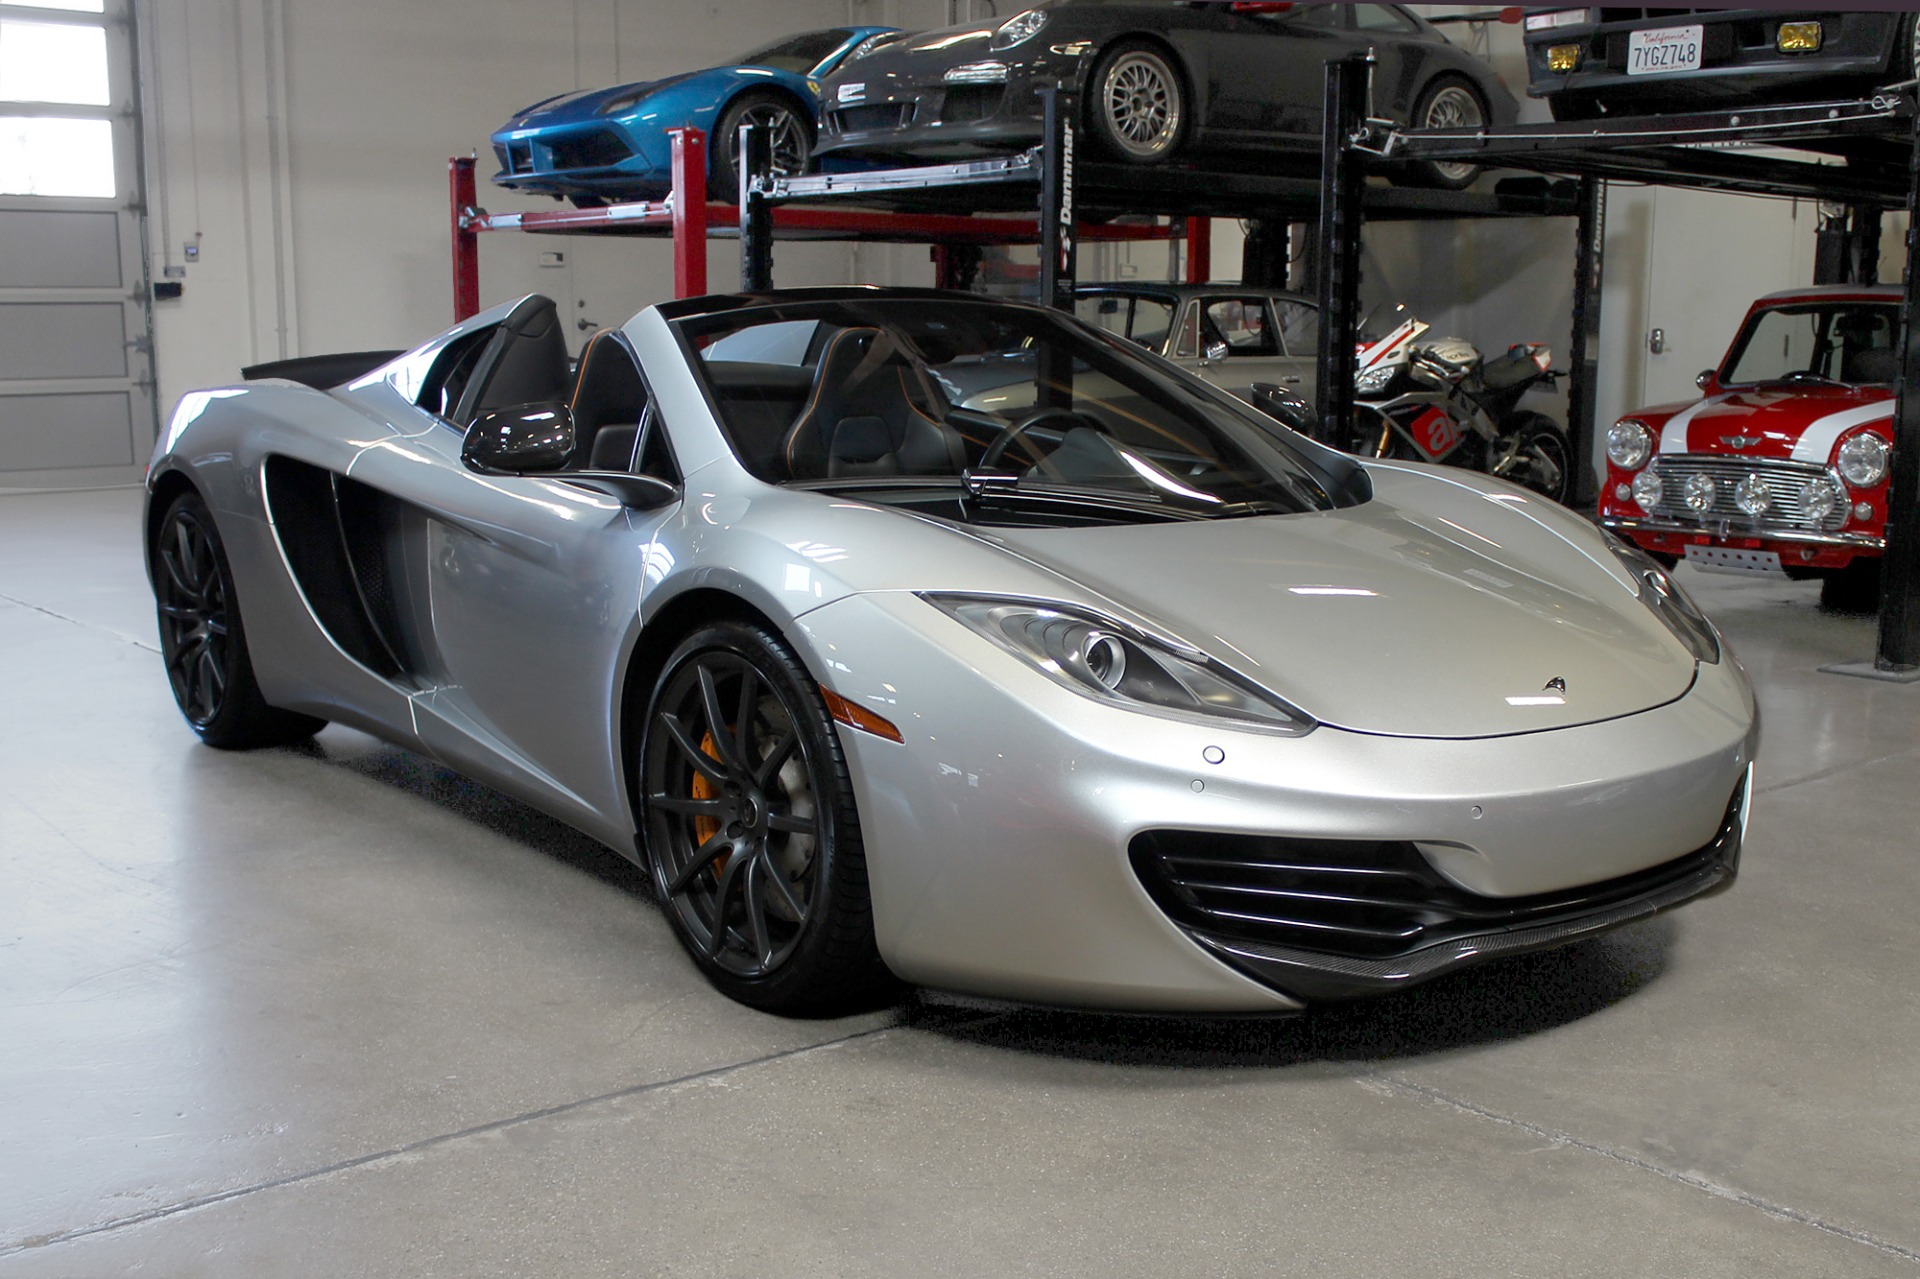 Used 2013 McLaren MP4-12C Spider for sale $115,995 at San Francisco Sports Cars in San Carlos CA 94070 1